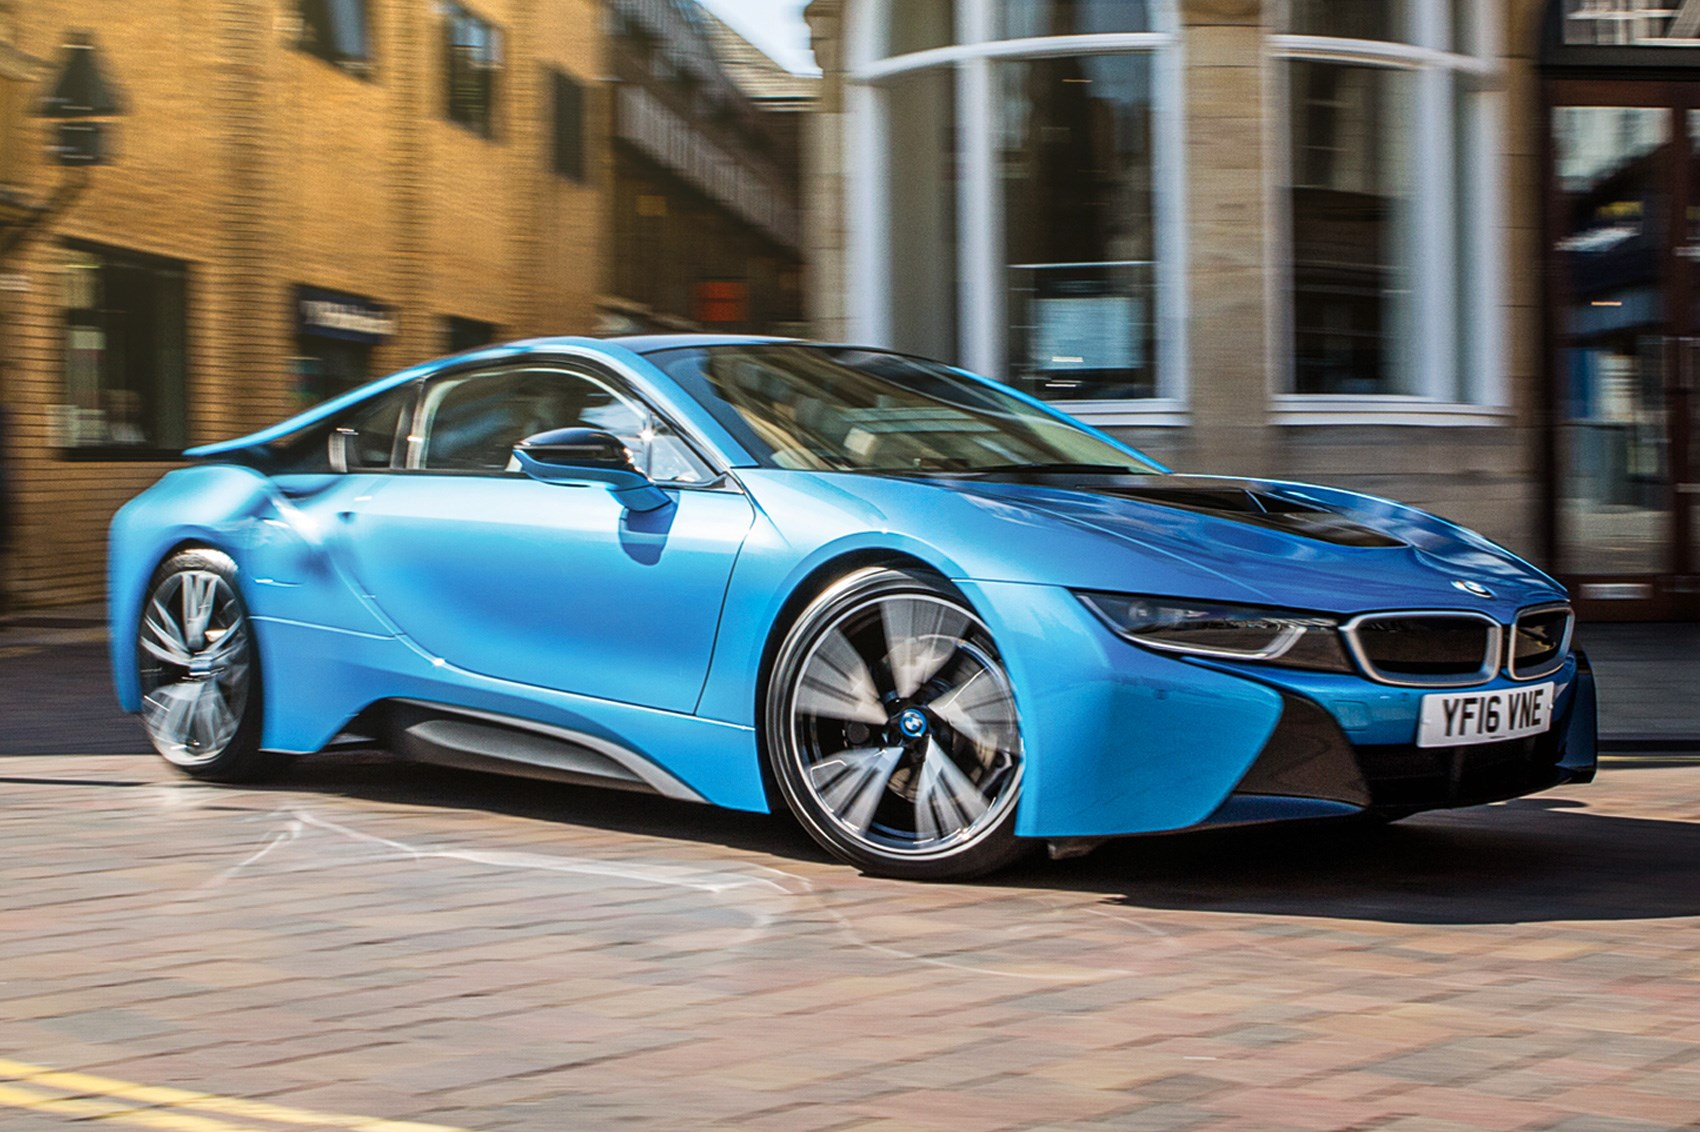 bmw i8 long term test 2018 review one more drive by car magazine. Black Bedroom Furniture Sets. Home Design Ideas